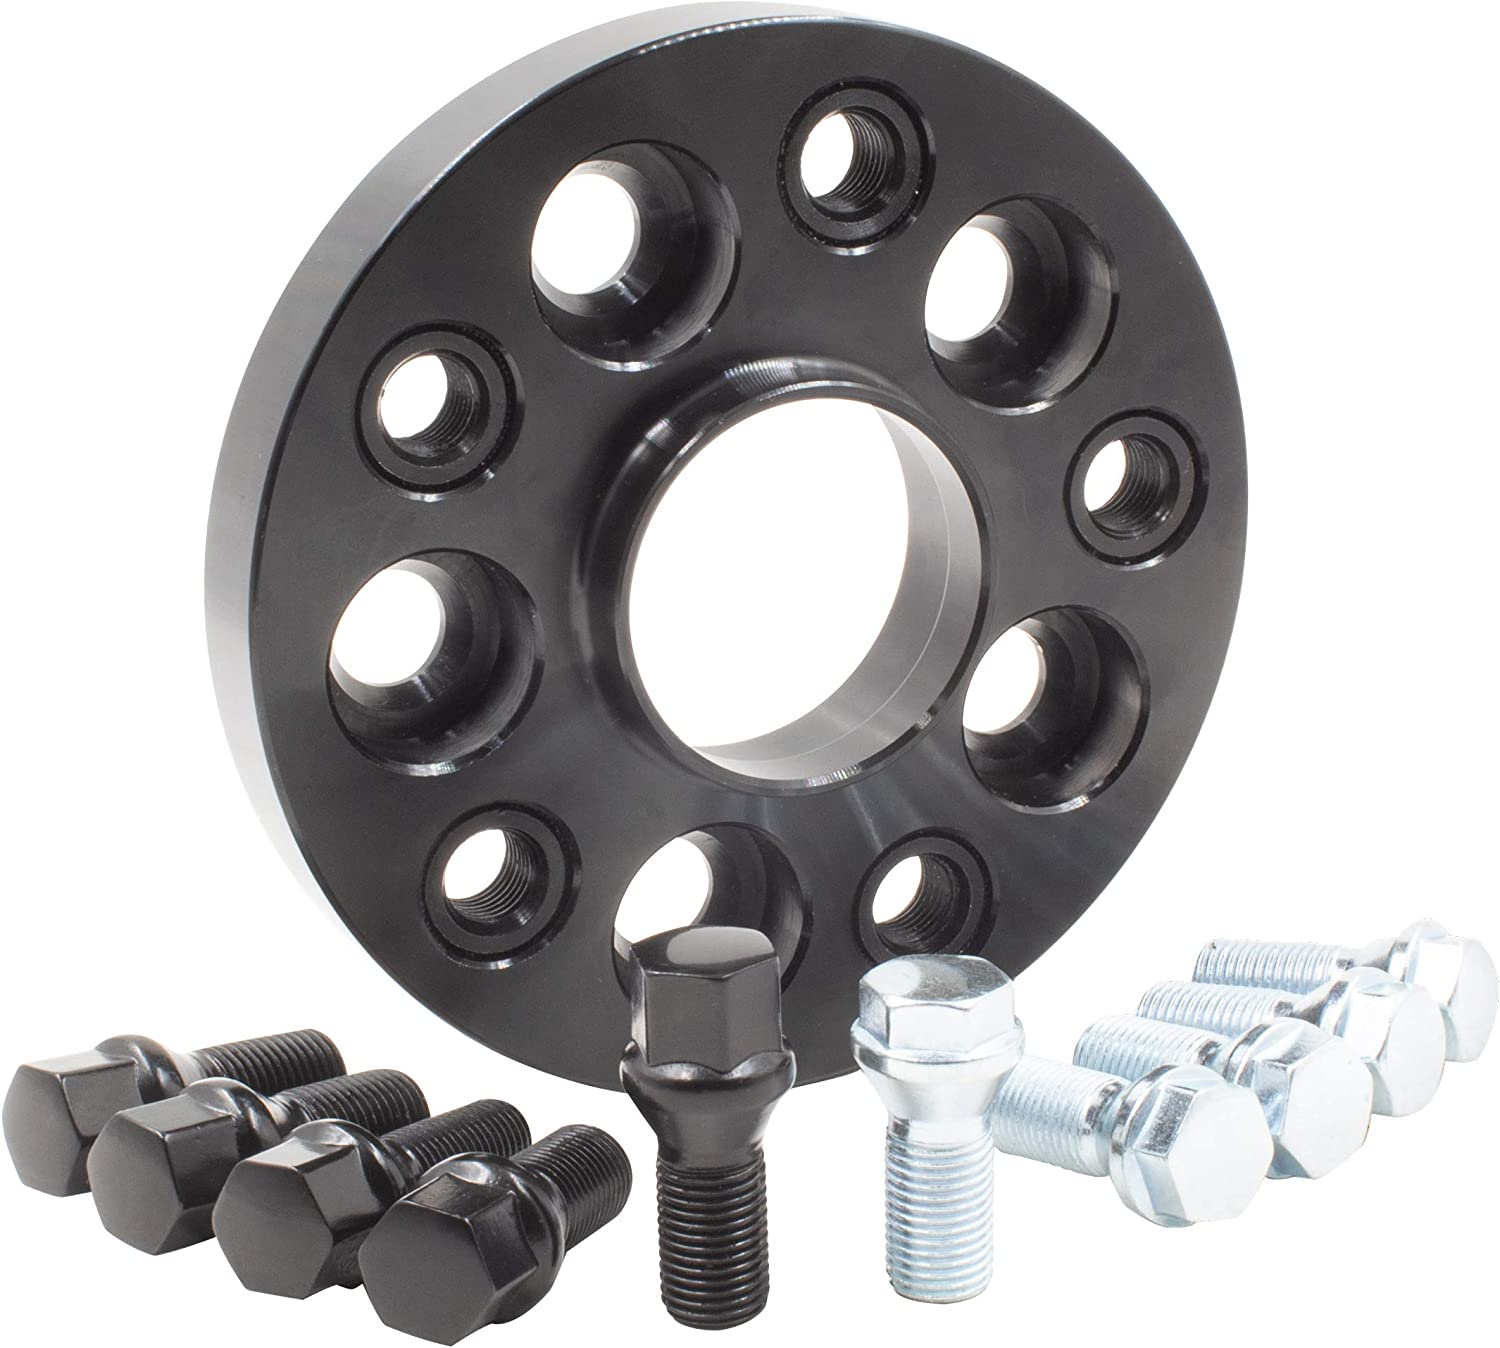 BLACK 5x130 30mm Hubcentric Wheels Spacers to fit Porsche Boxster